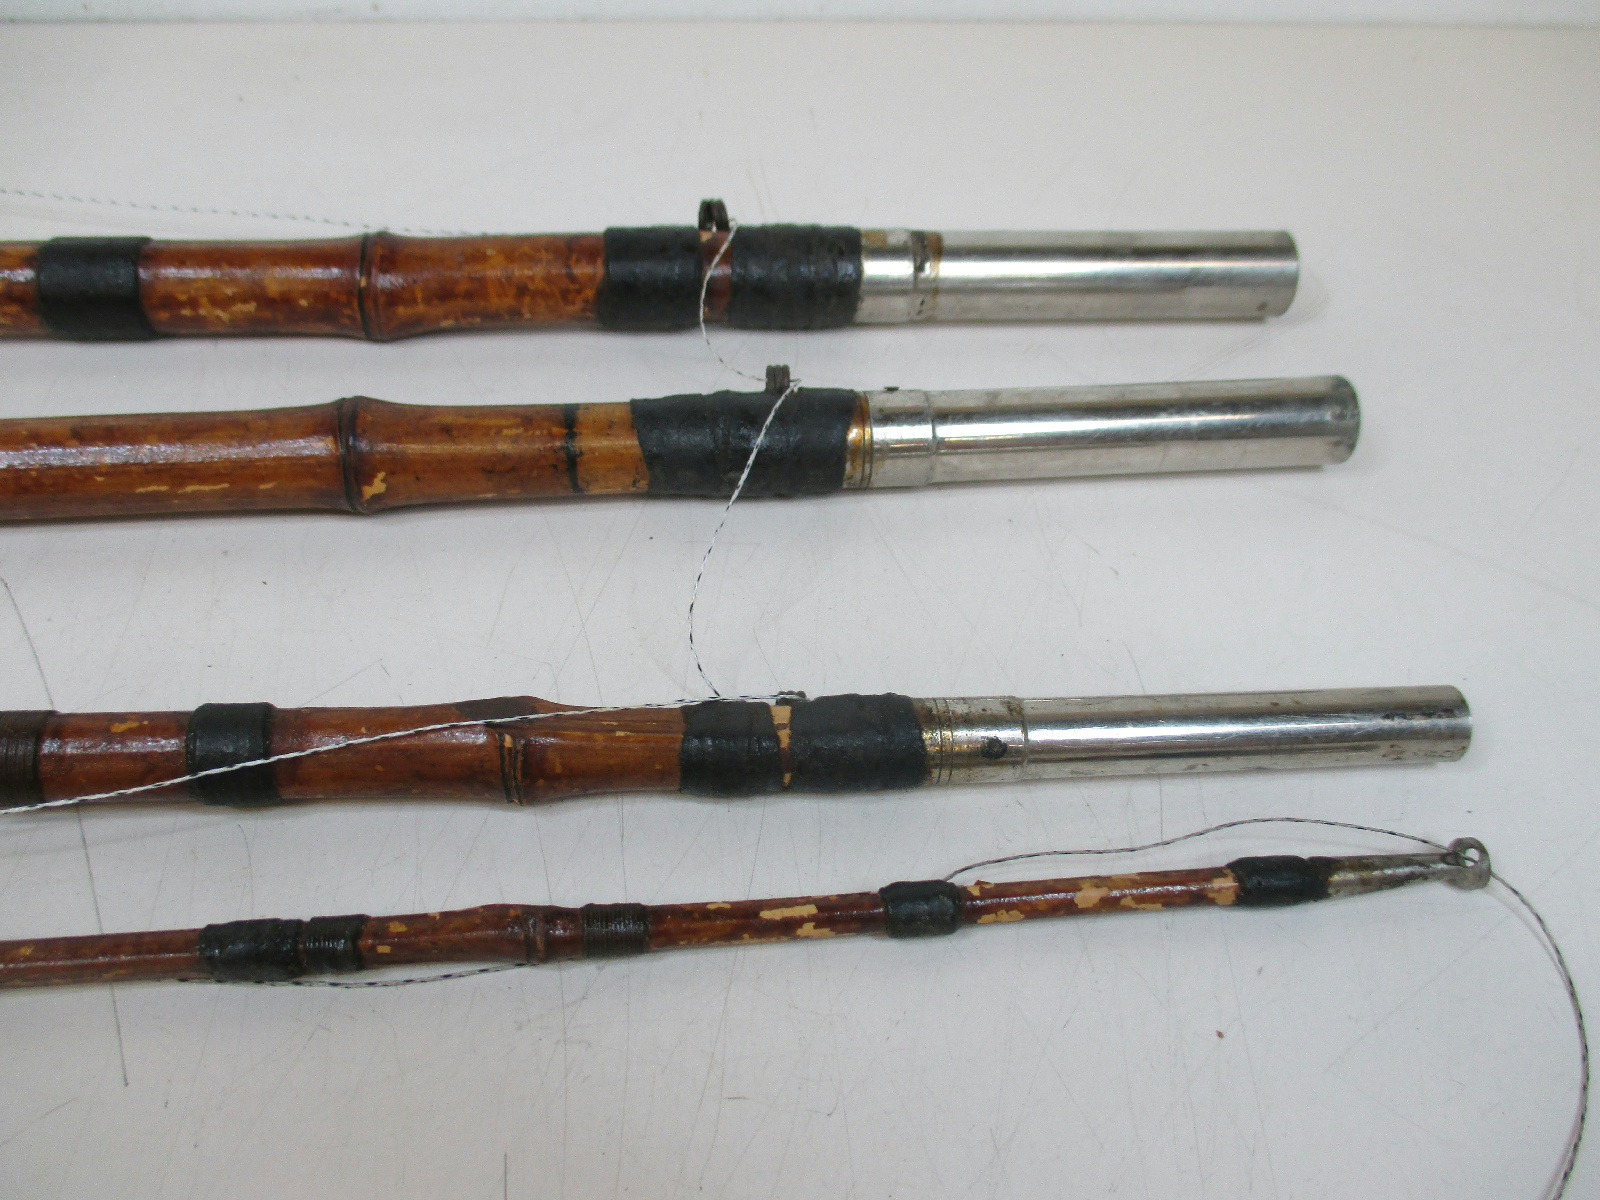 Vintage bamboo fly fishing rod with pflueger captain reel